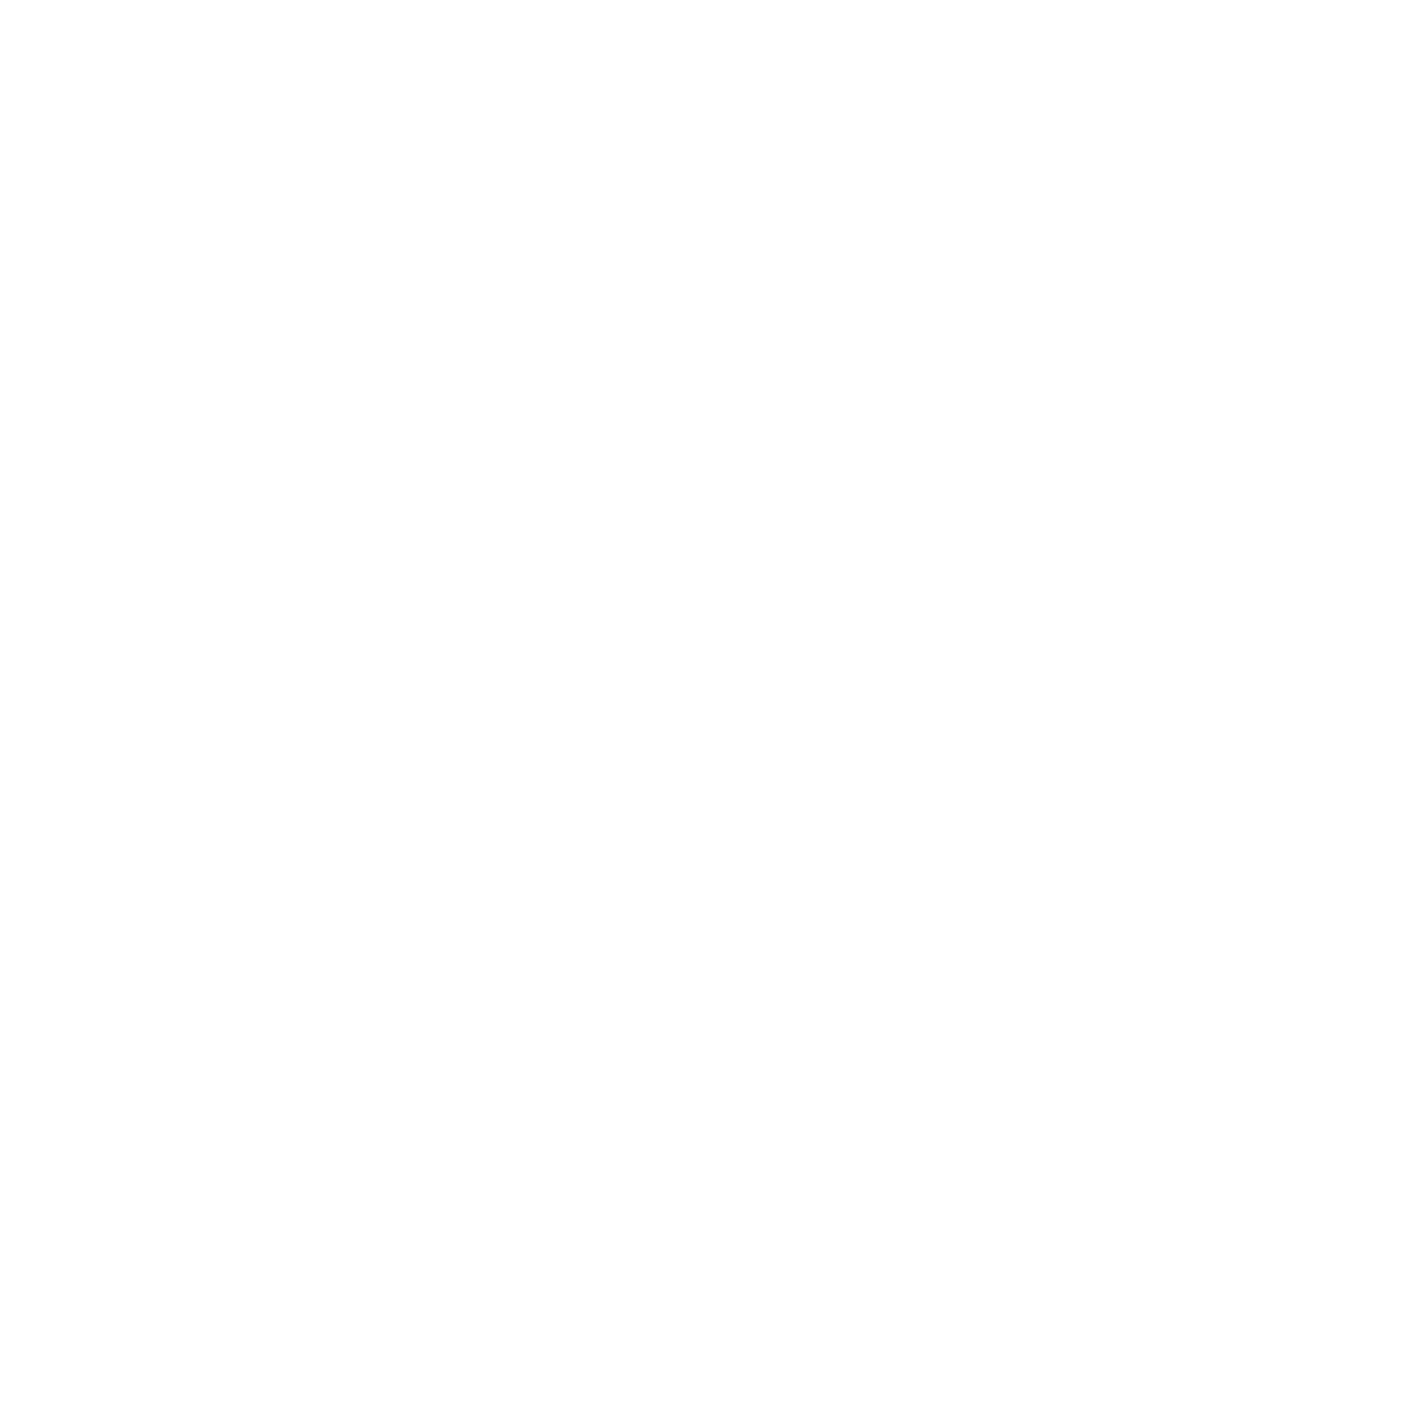 Christmas trees for sale in Lincolnshire | Strawson Woodland